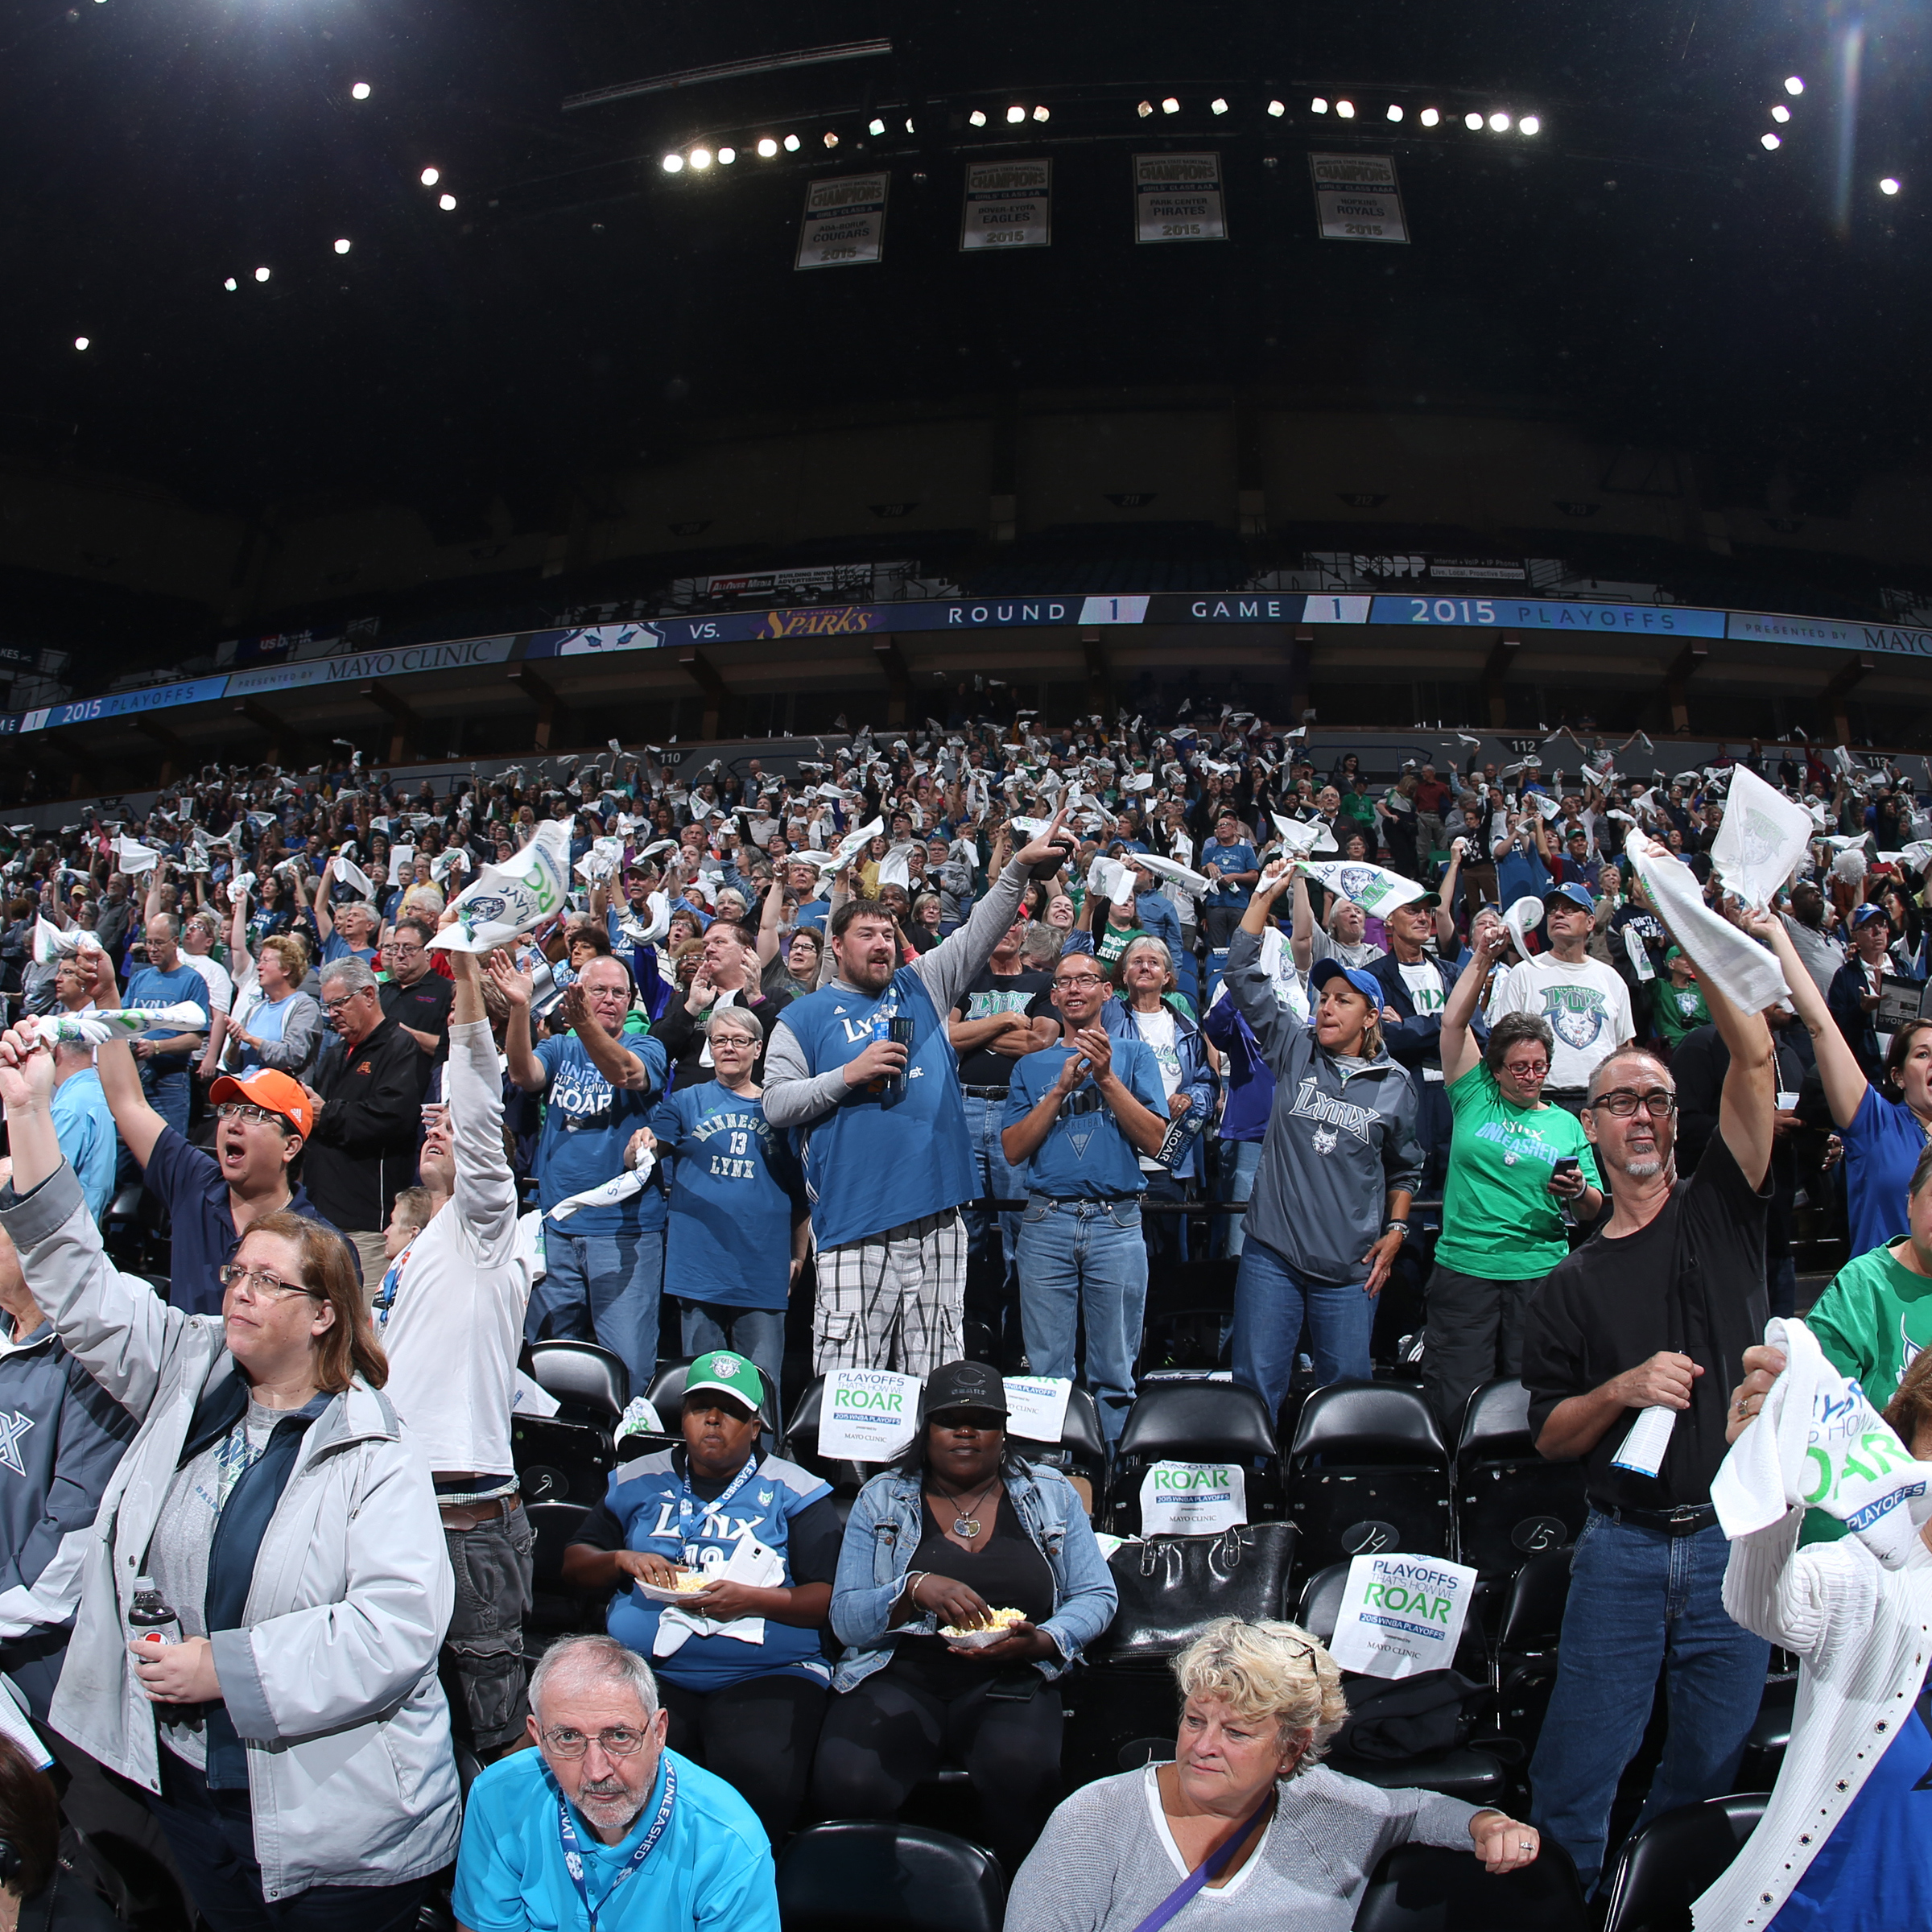 MINNEAPOLIS, MN - SEPTEMBER 18:  Minnesota Lynx fans wave their towels before the game against the Los Angeles Sparks during Game 1 of the 2015 WNBA Western Conference Semifinal on September 18, 2015 at Target Center in Minneapolis, Minnesota.  NOTE TO USER: User expressly acknowledges and agrees that, by downloading and or using this Photograph, user is consenting to the terms and conditions of the Getty Images License Agreement. Mandatory Copyright Notice: Copyright 2015 NBAE (Photo by David Sherman/NBAE via Getty Images)